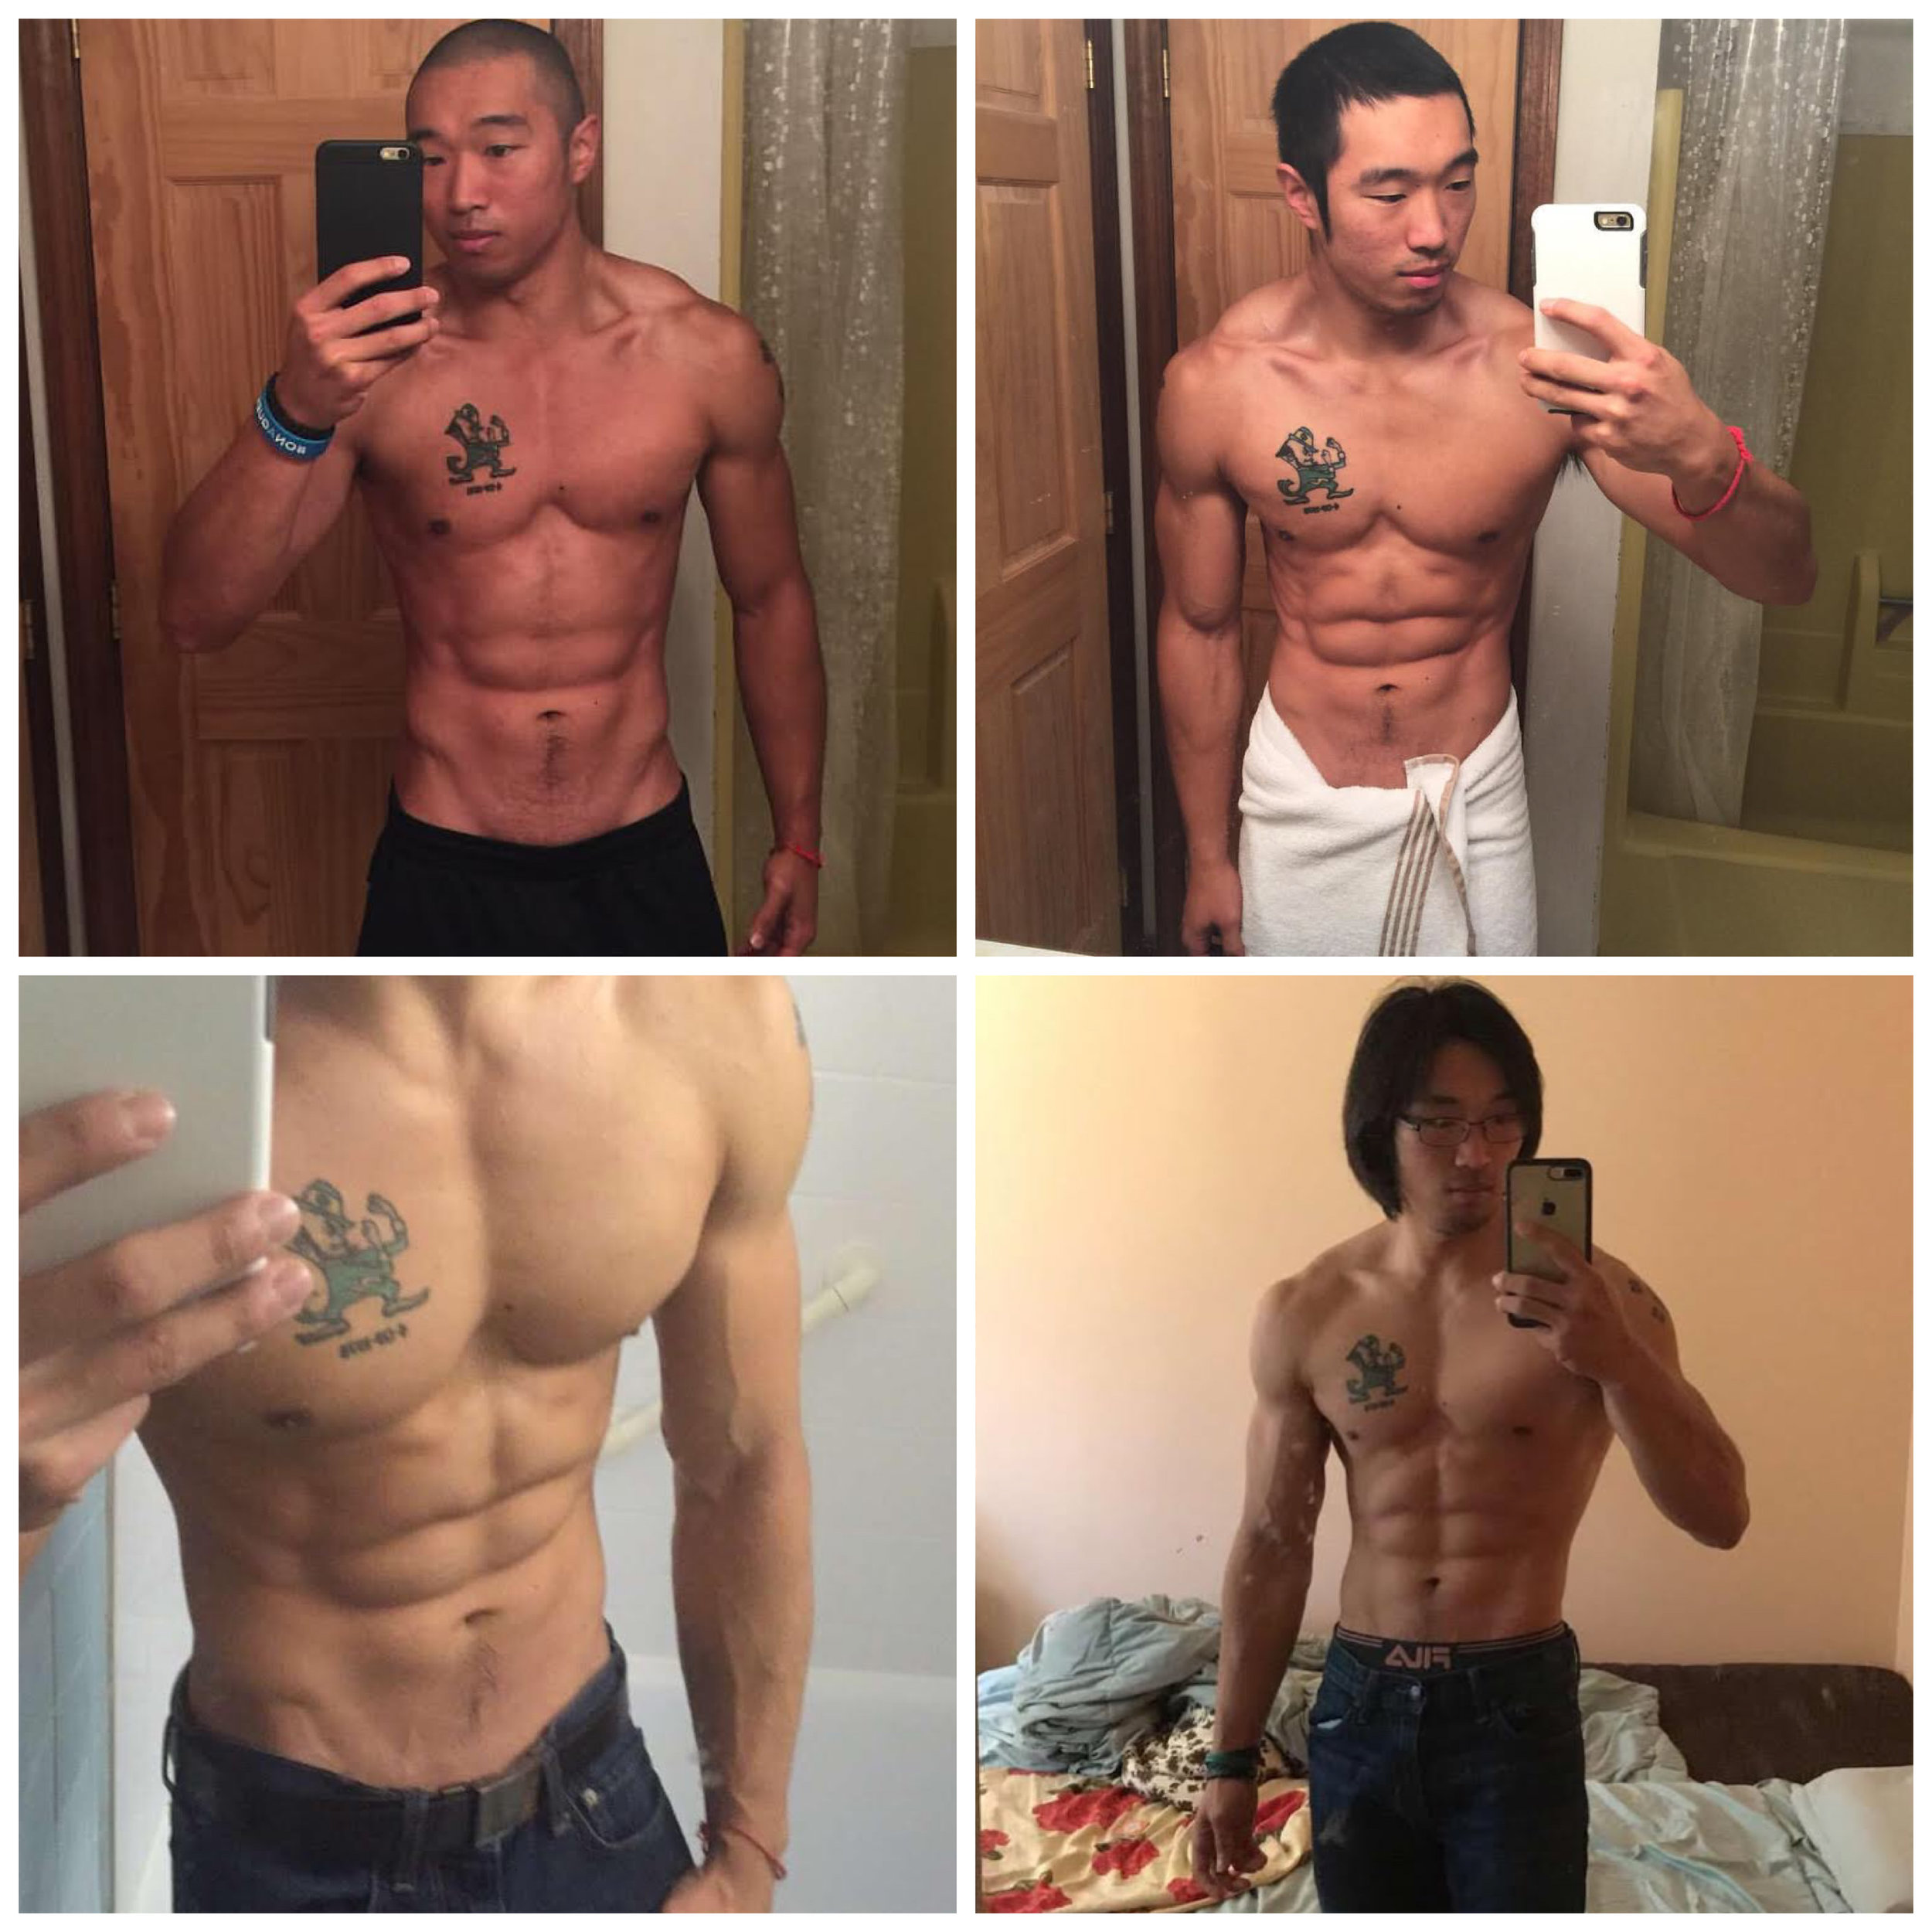 Top Left: Body Building Style workouts @177-182lbs Top Right: Incorporating more Metabolic Conditioning @173-77lbs Bottom Left: Switched over to Official Ninja Training @160-165lbs Bottom Right: Fully committed to Ninja Training @ 168-173 (The best I've ever felt TBH) *I don't mean to sensationalize my body in these pictures, they are the only ones I have to best showcase how even as I changed my training protocol, I was able to keep the aesthetic I wanted while improving overall performance.  *For each phase of training I was following and track macros specifically for each performance goal.